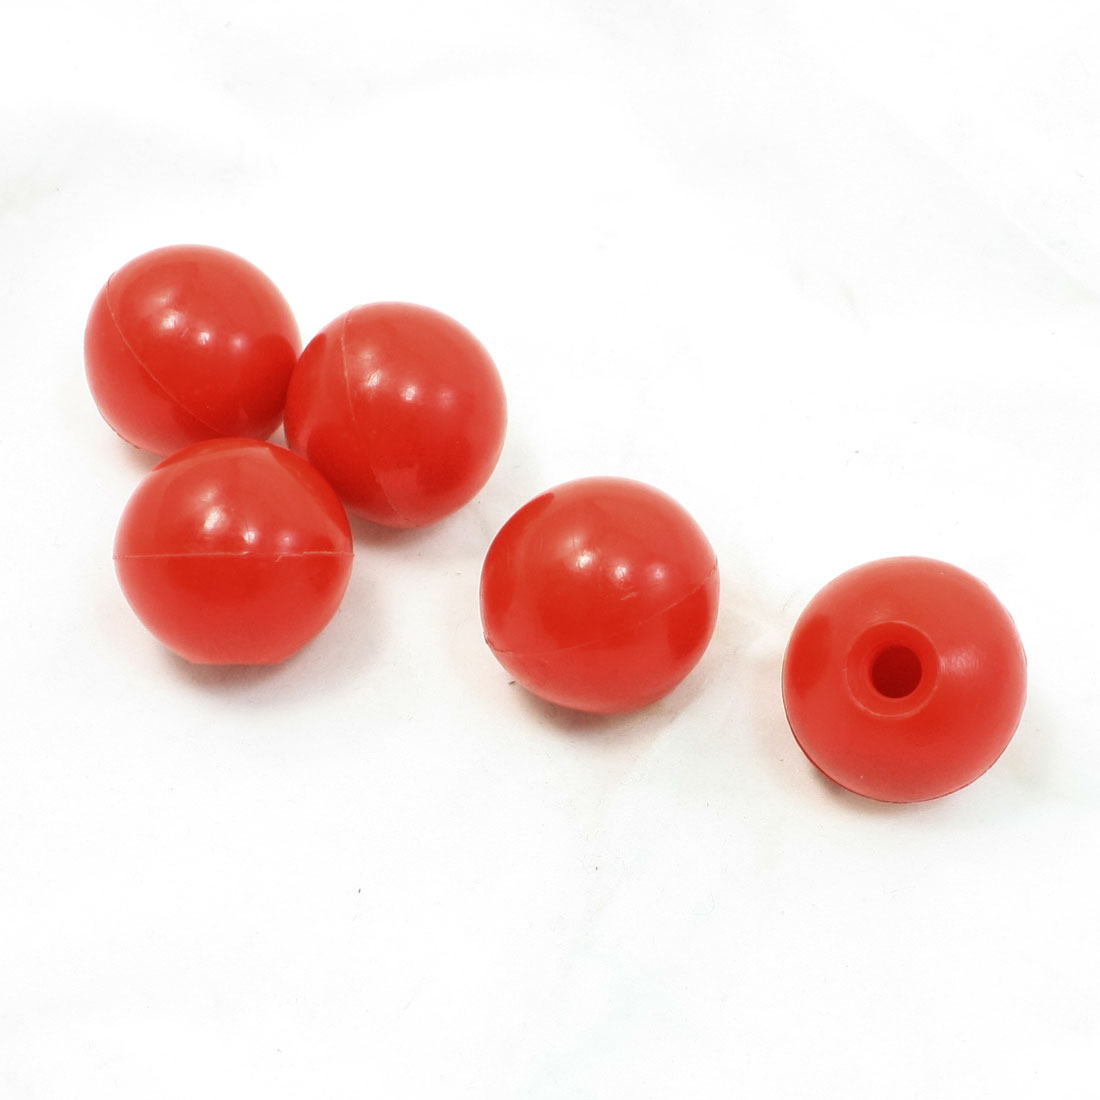 5 x Arcade Game Joystick Machine Handle Ball Knob Red 32mm Dia 8mm Thread